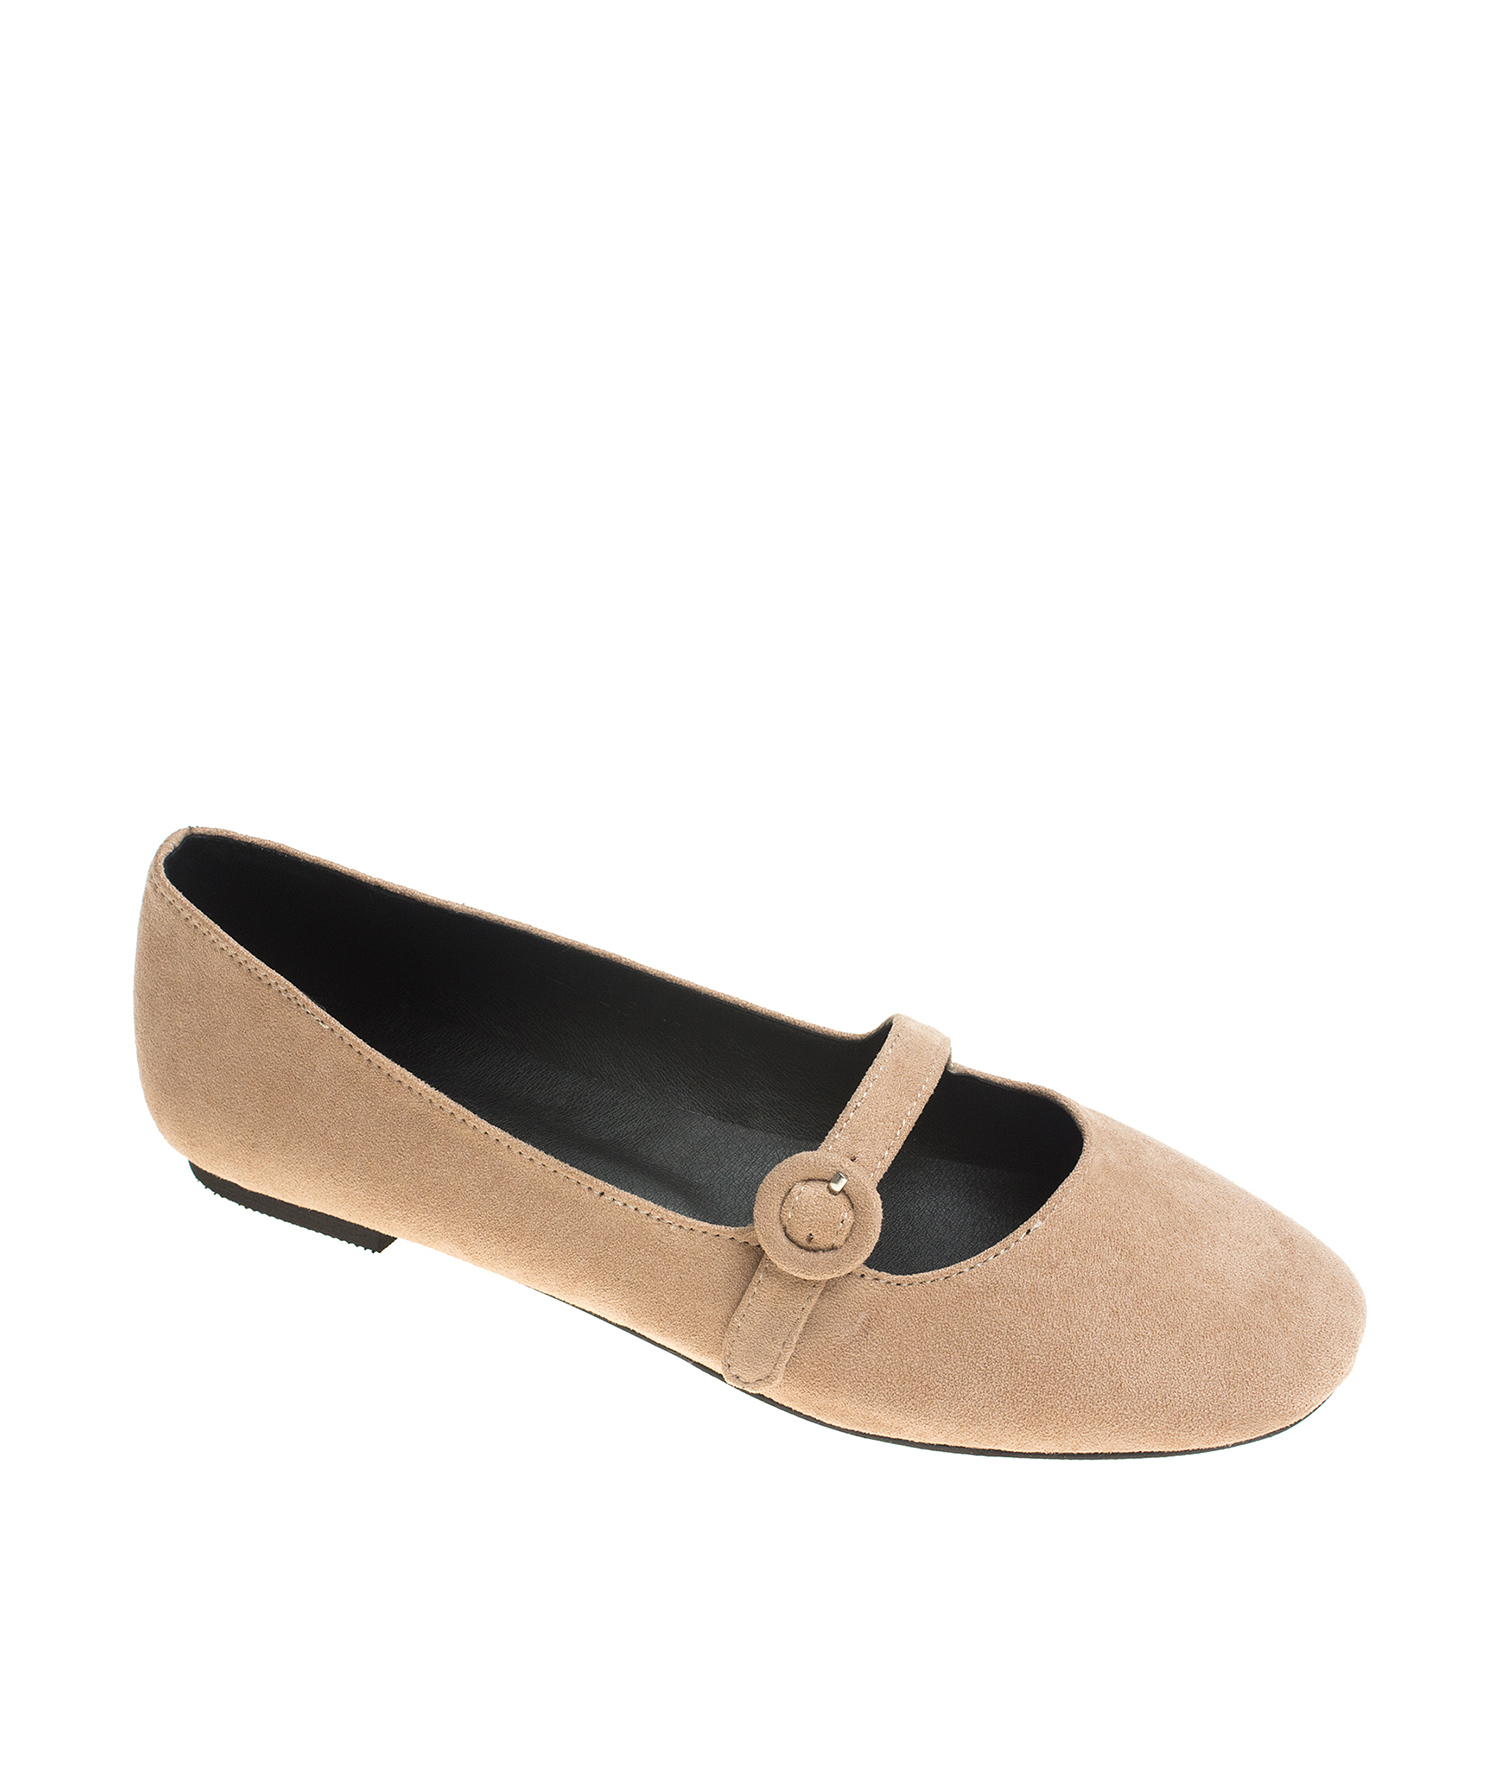 AnnaKastle Womens Suede Mary Jane Ballerina Flats ApricotBeige